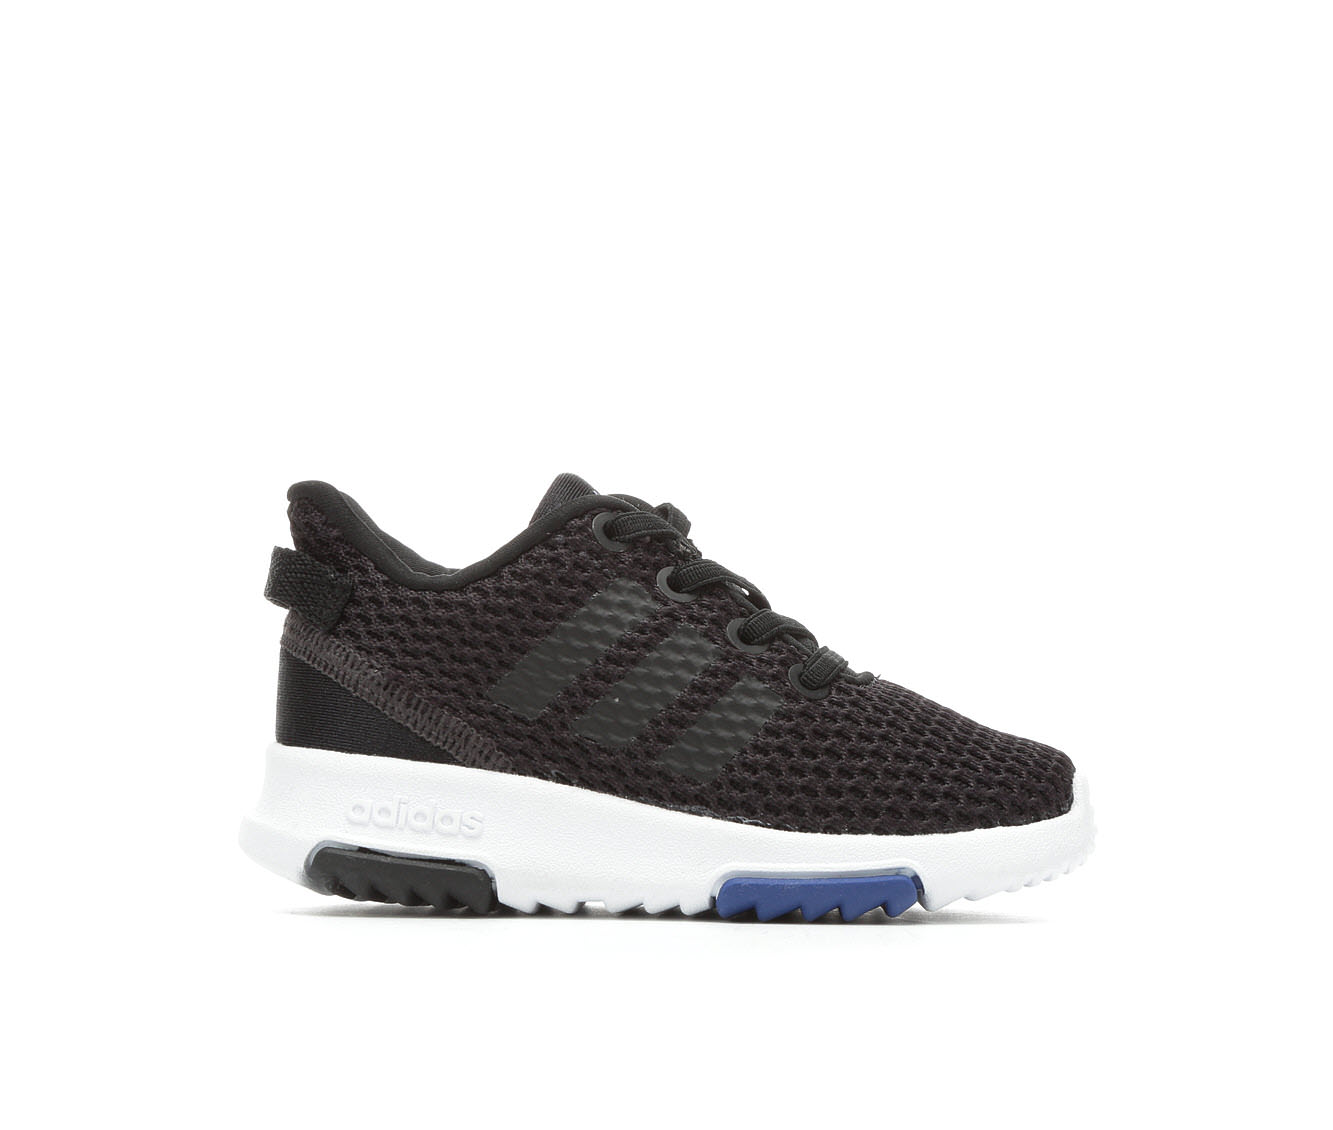 Girls' Adidas Infant Racer TR Running Shoes (Black - Size 4 - ) 1699875